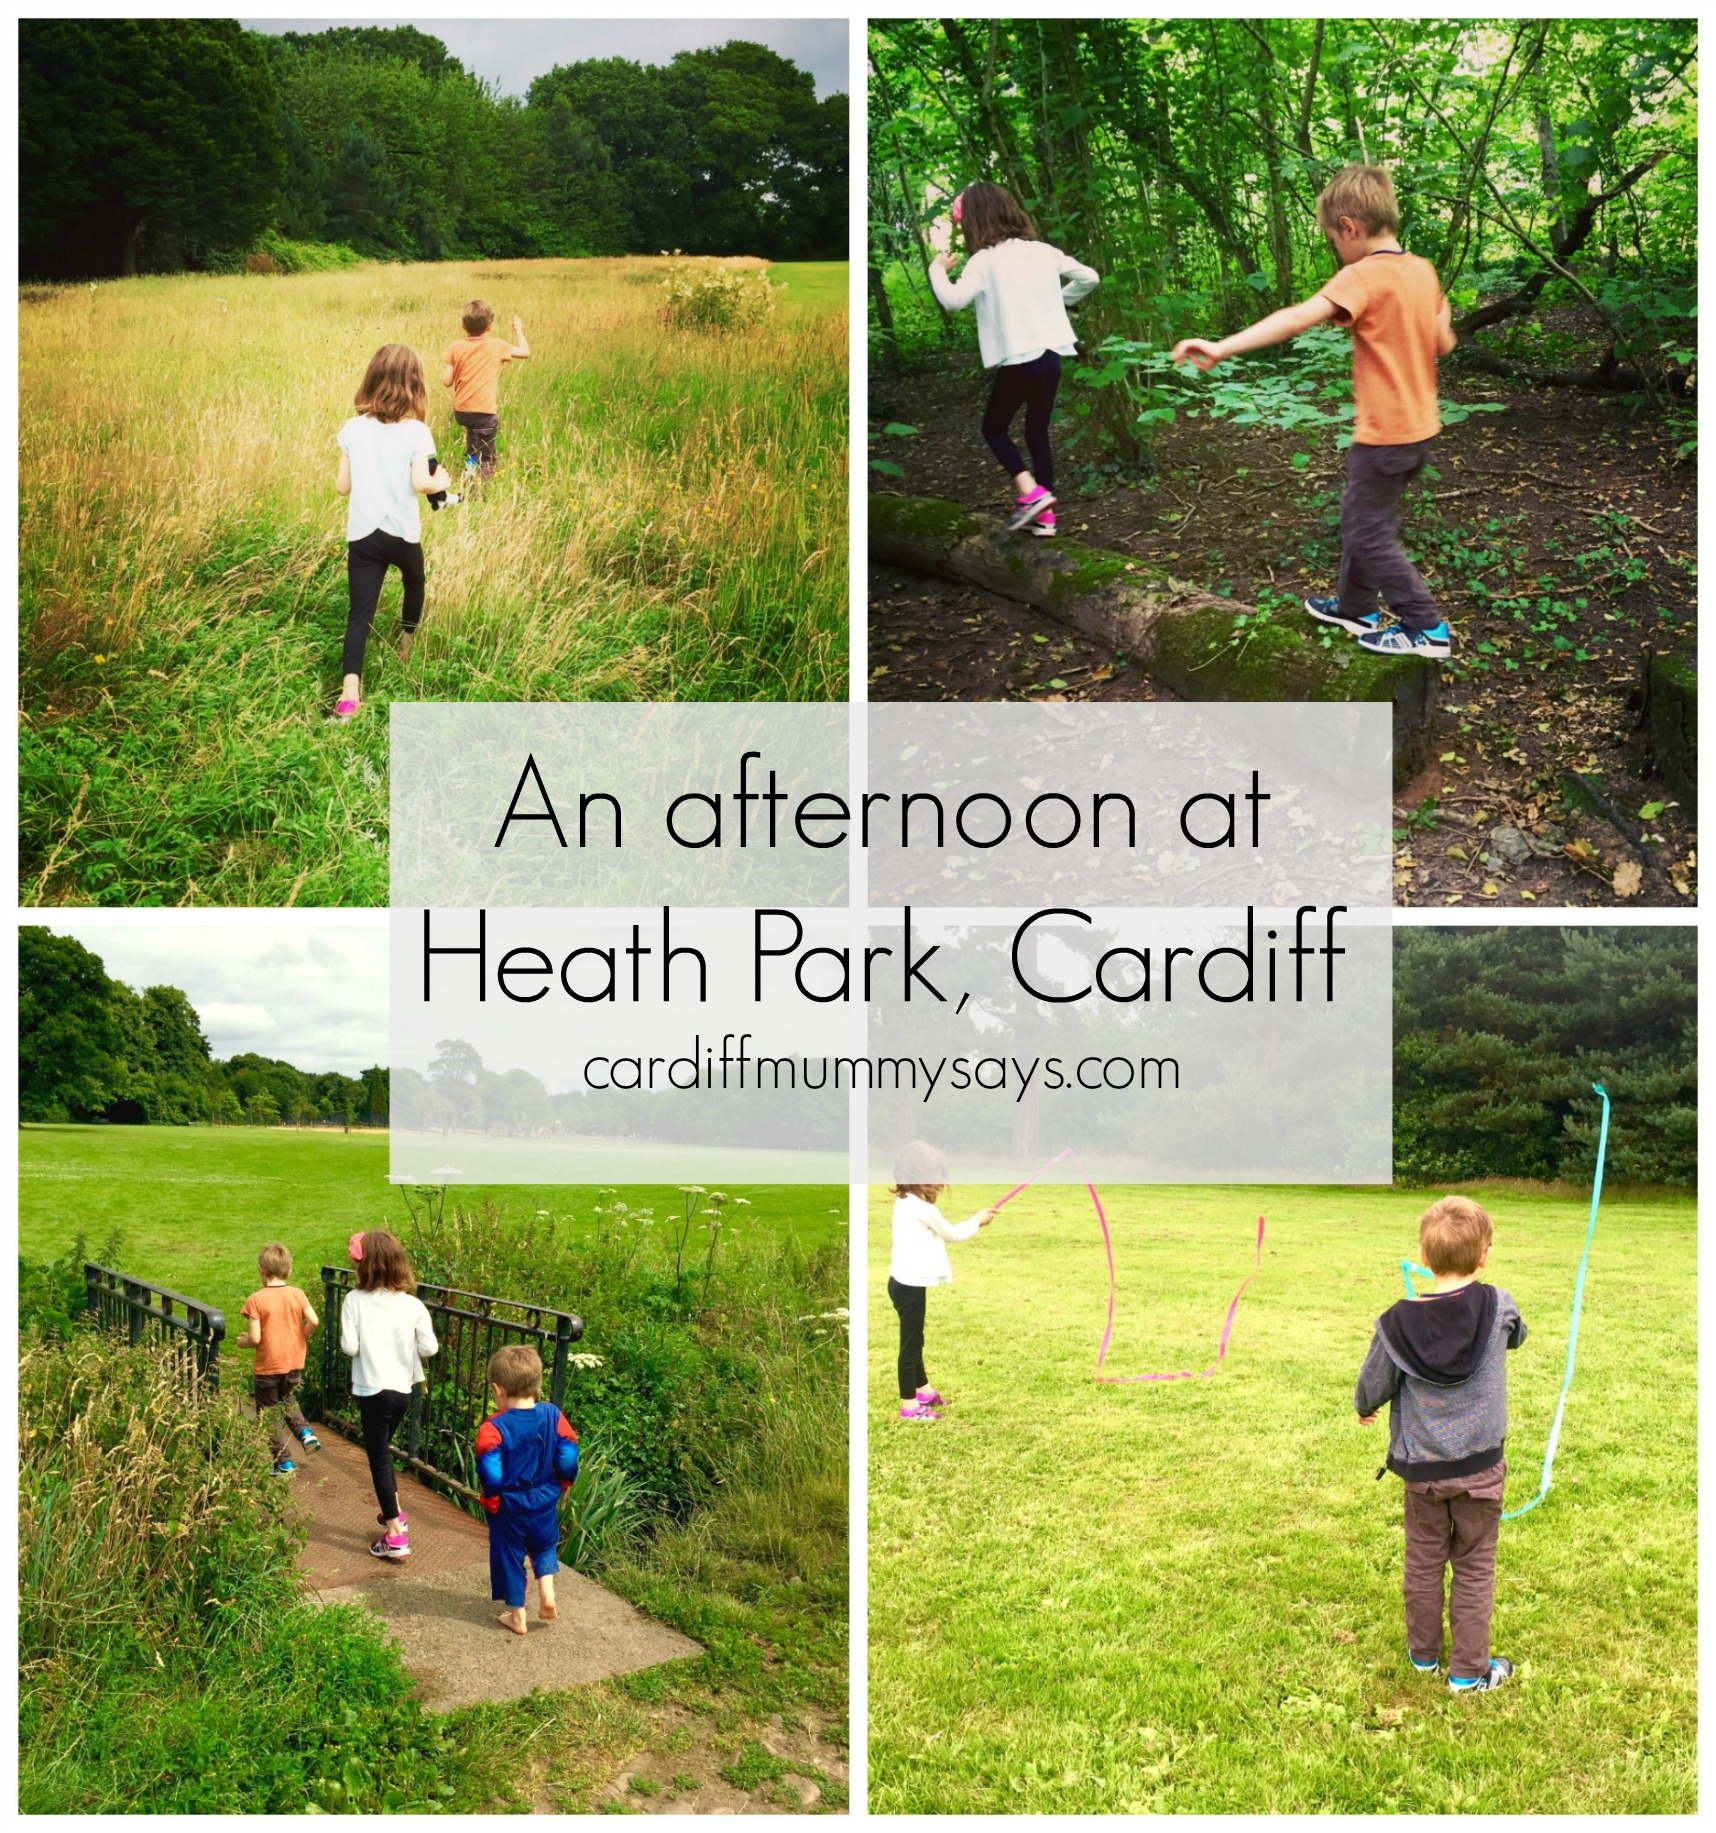 Heath Park collage 2